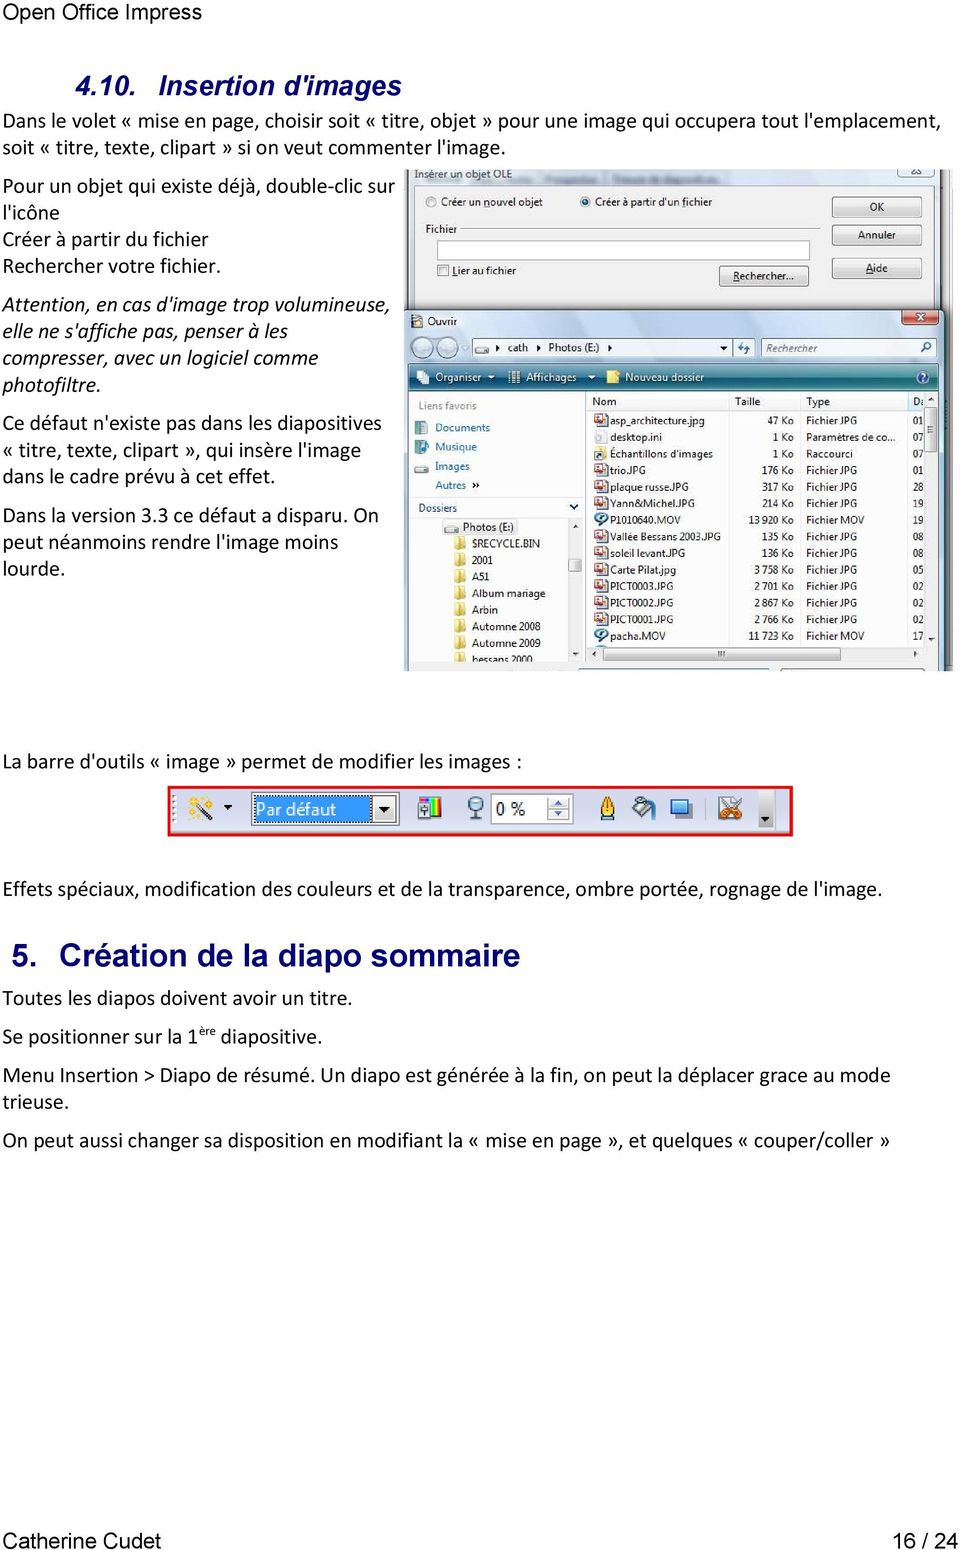 impress  open office ou libre office